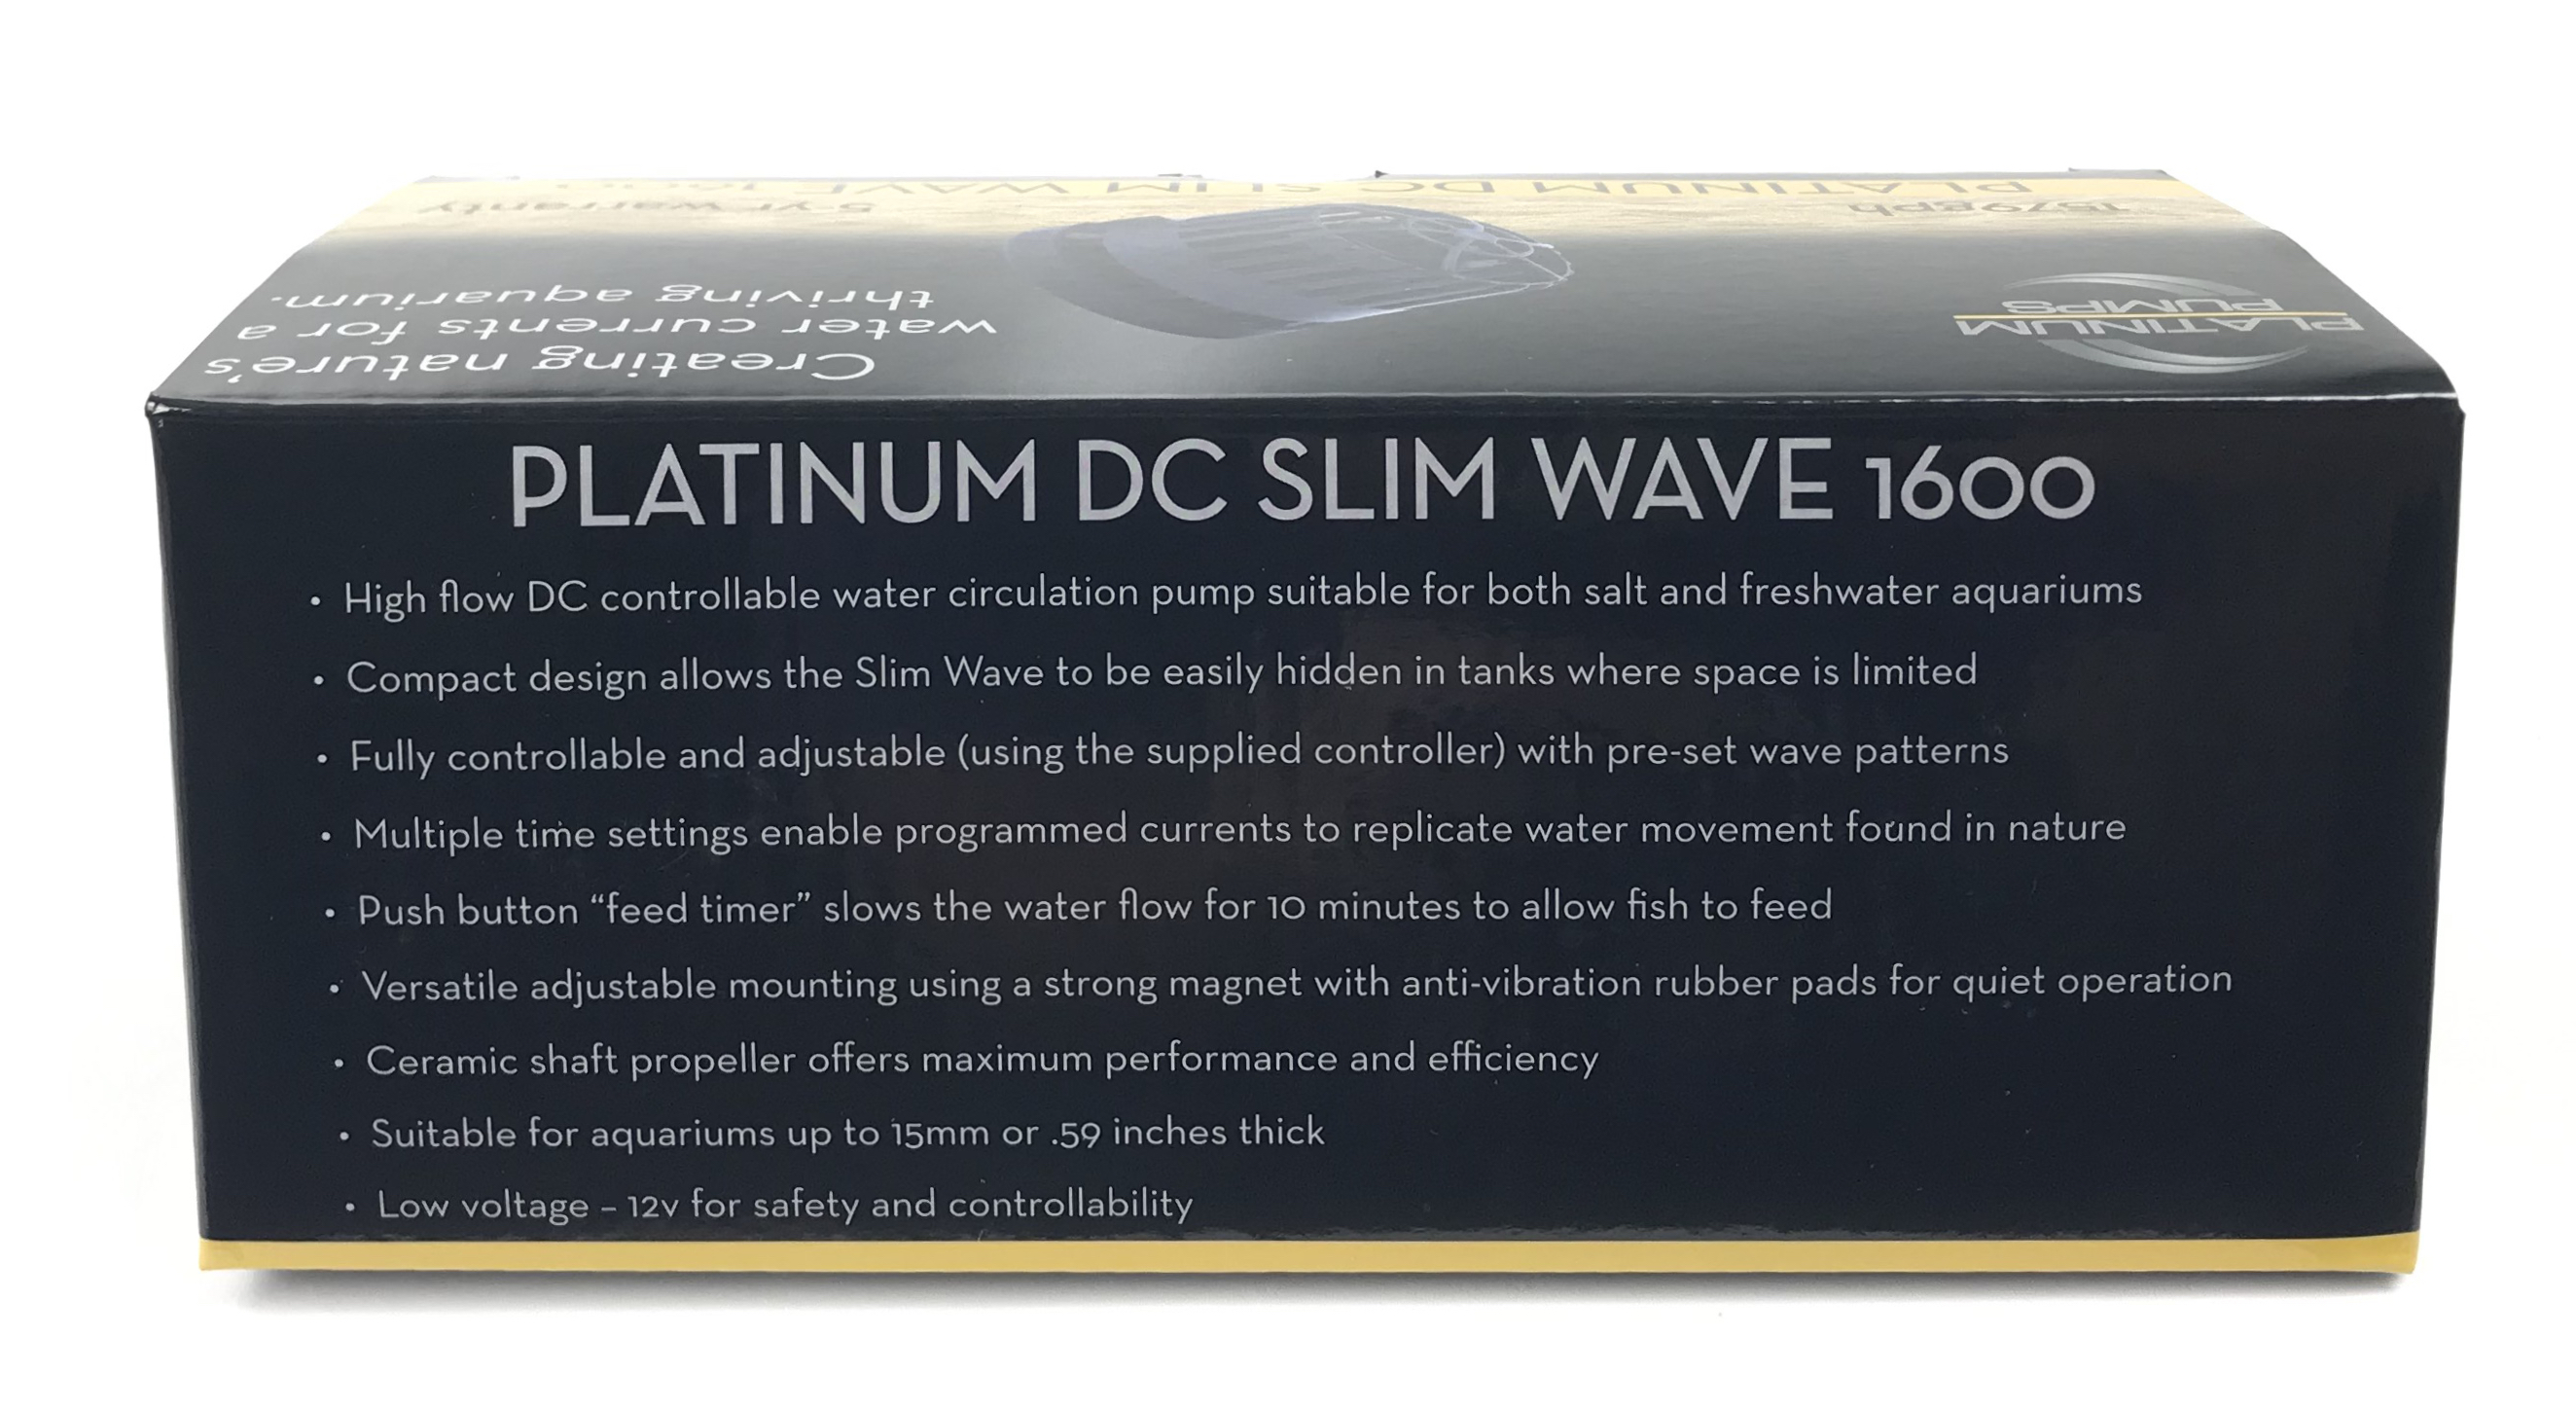 Platinum DC Slim Wave 1600 Pump - 1579 gph